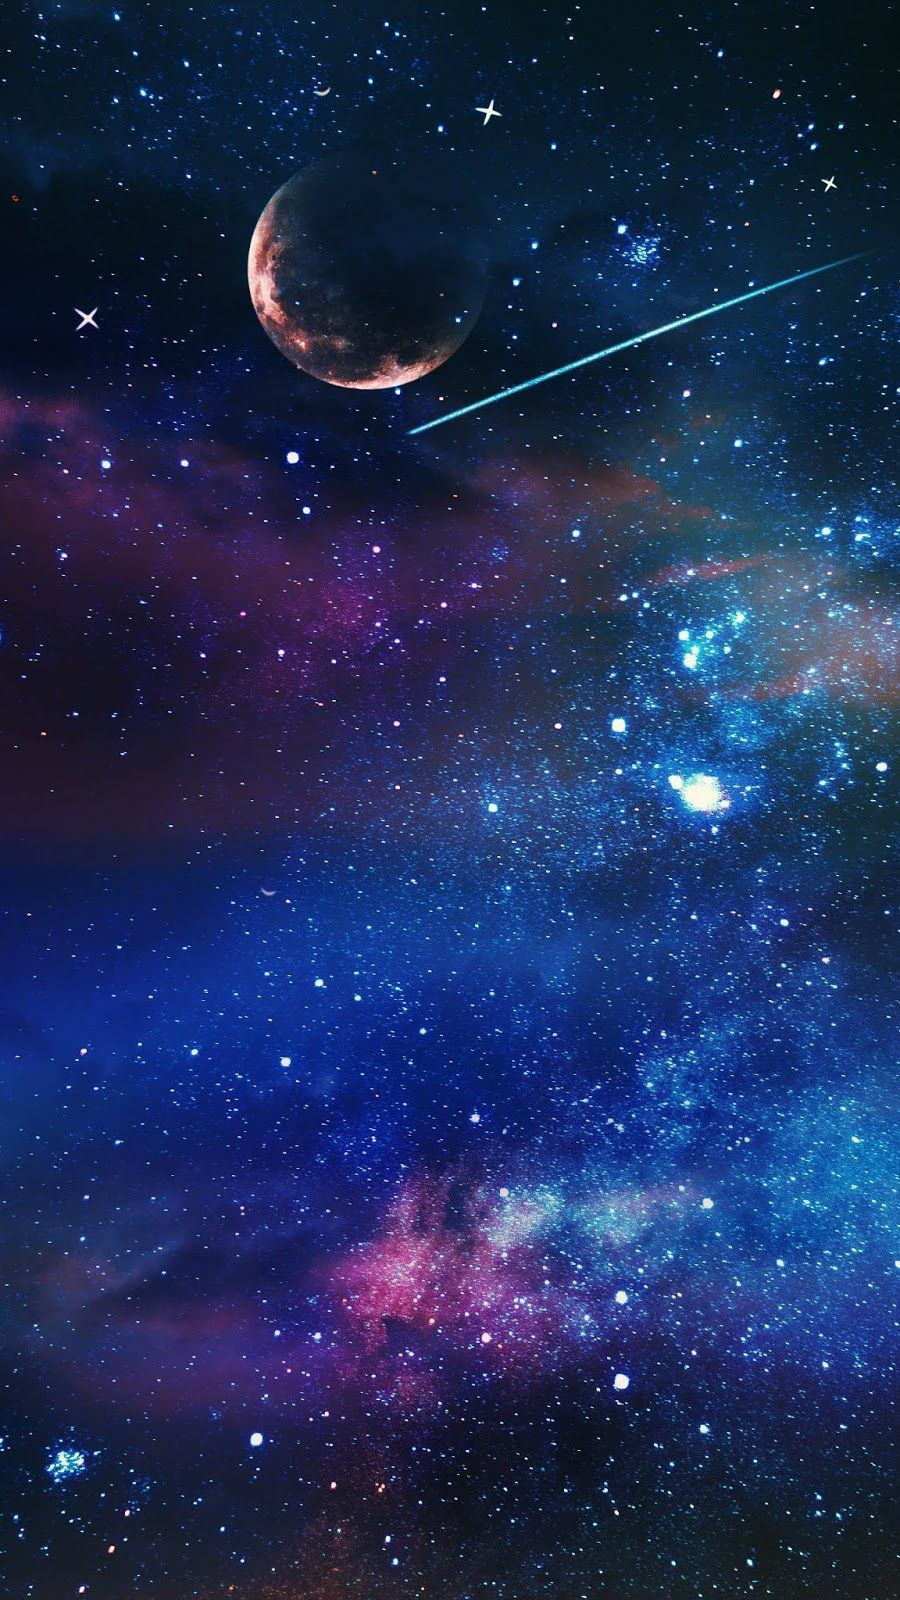 Vibrance Of The Universe With Images Galaxy Wallpaper Cellphone Wallpaper Nature Wallpaper